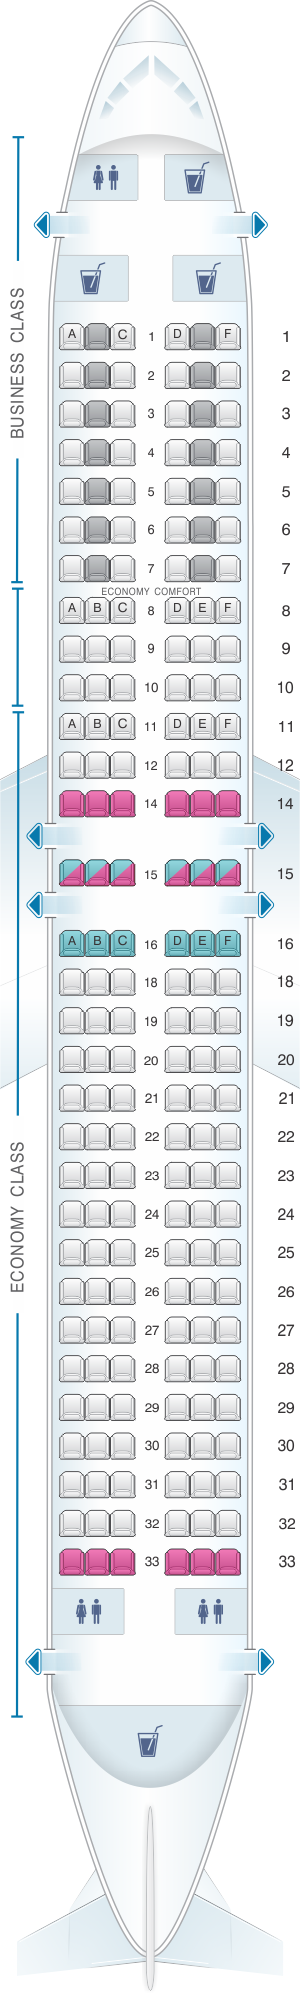 Seat map for KLM Boeing B737 900